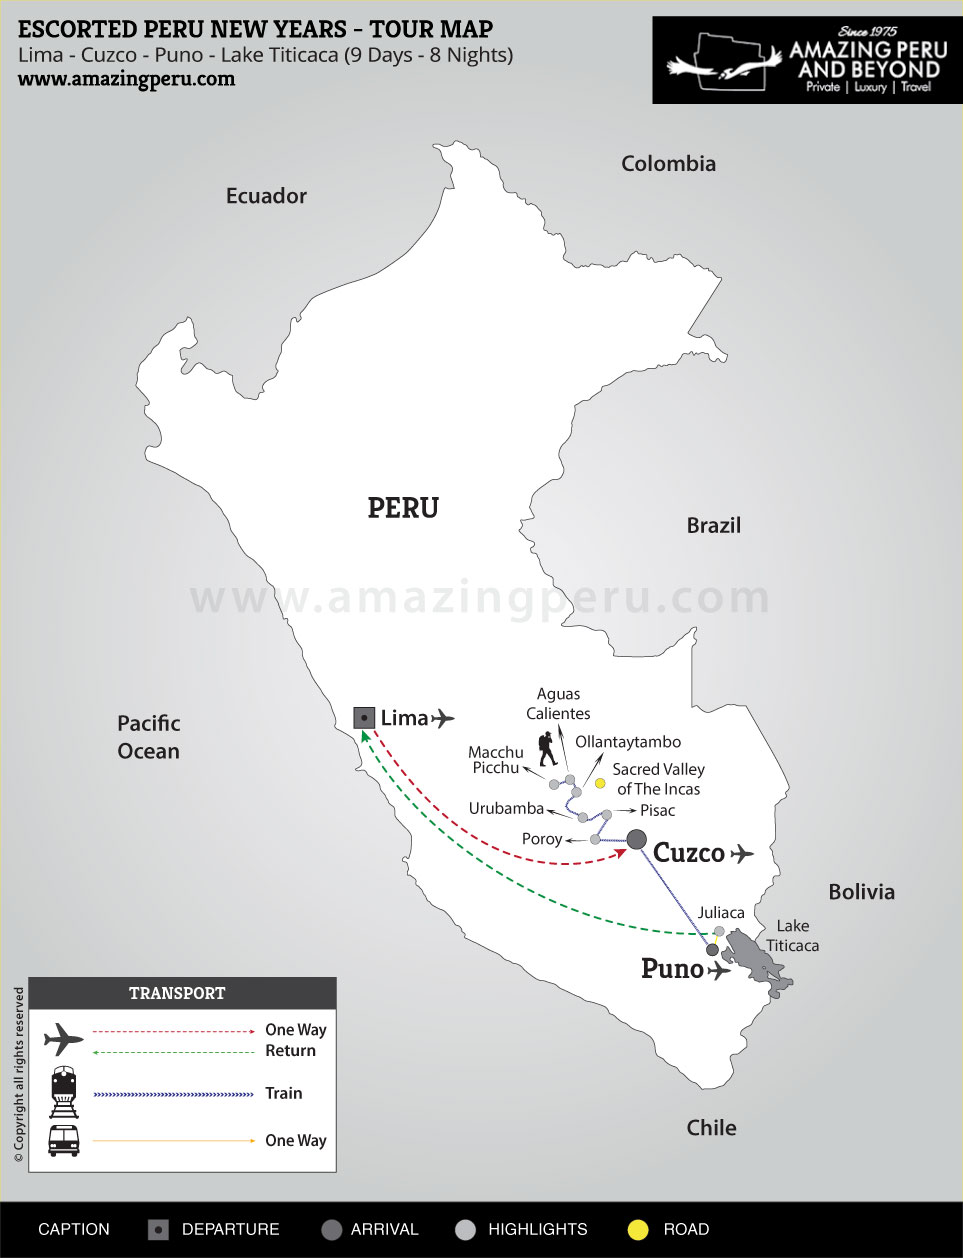 2018-19 Escorted Peru New Years 1 - 9 days / 8 nights.